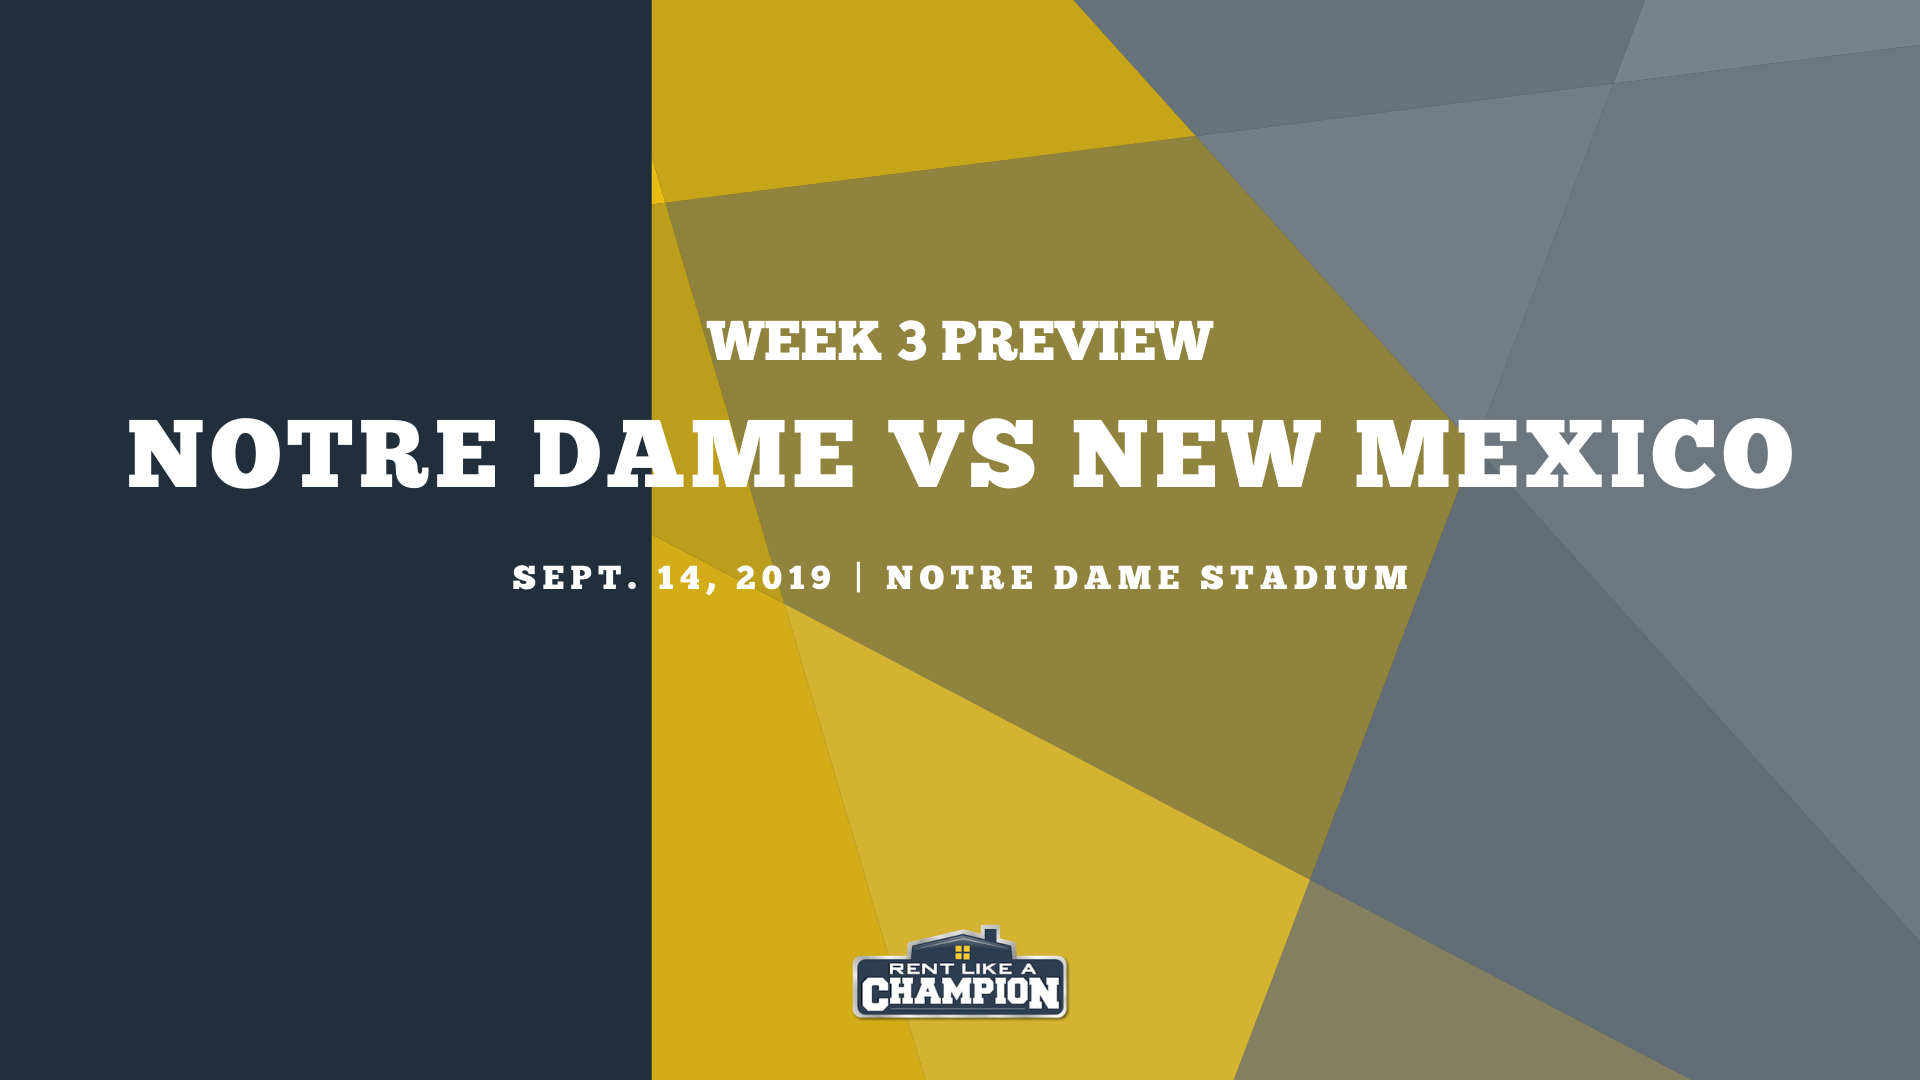 Notre Dame vs. New Mexico: Preview, keys to the game, and predictions